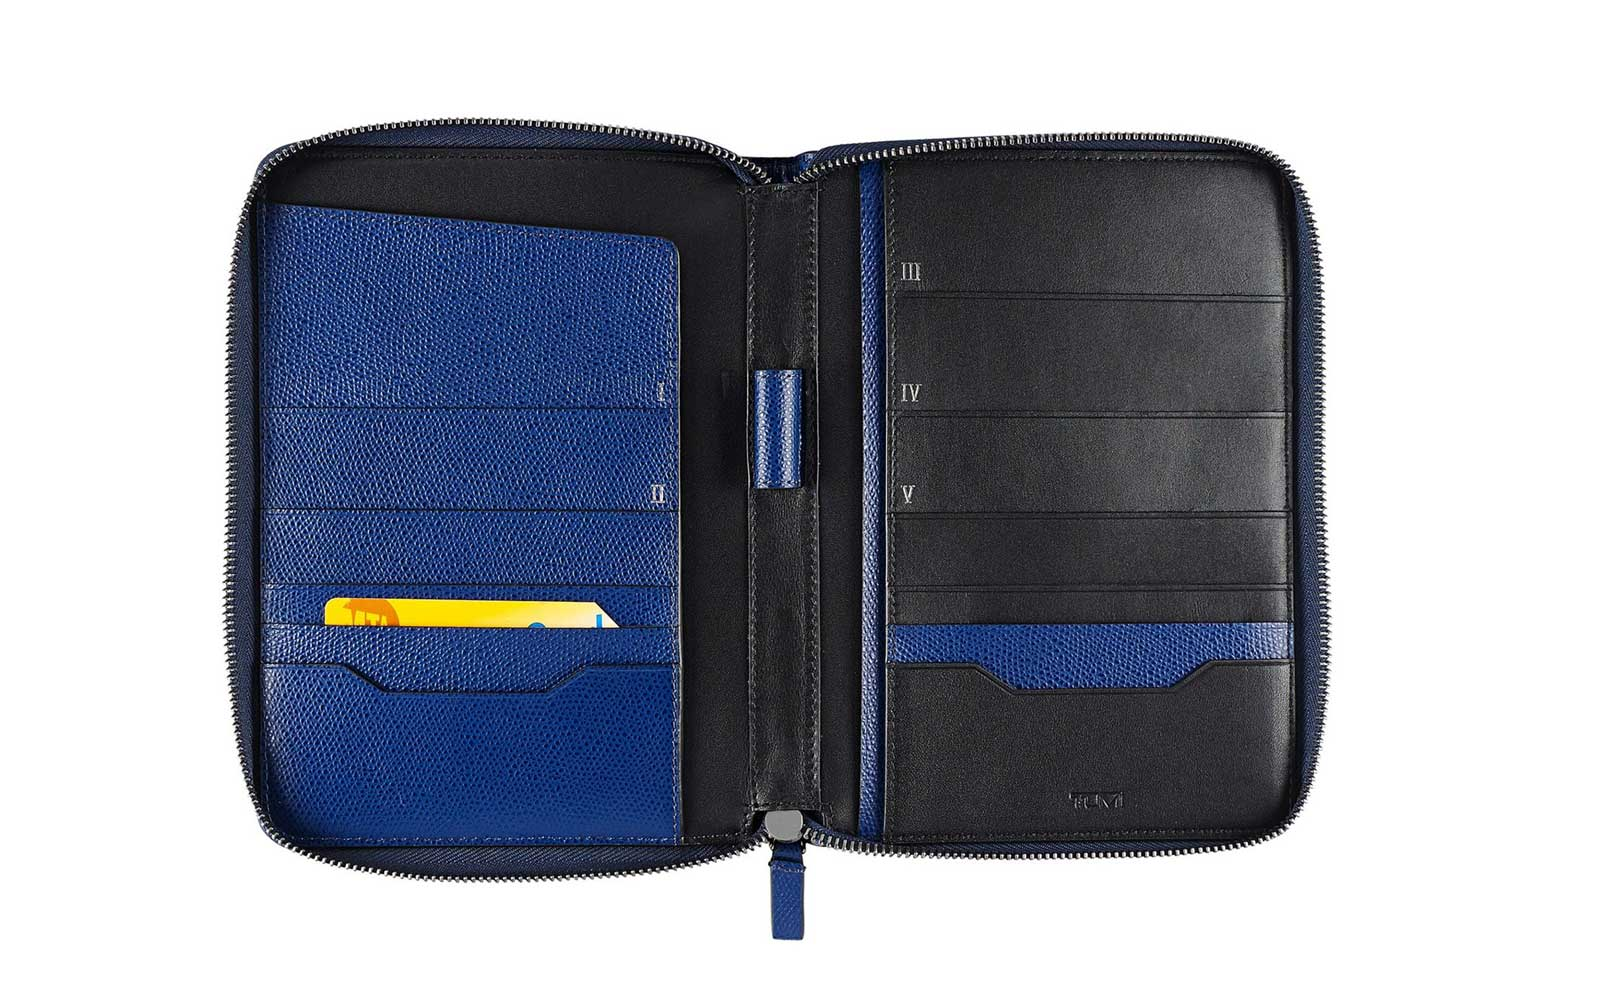 Tumi Leather Passport Holder